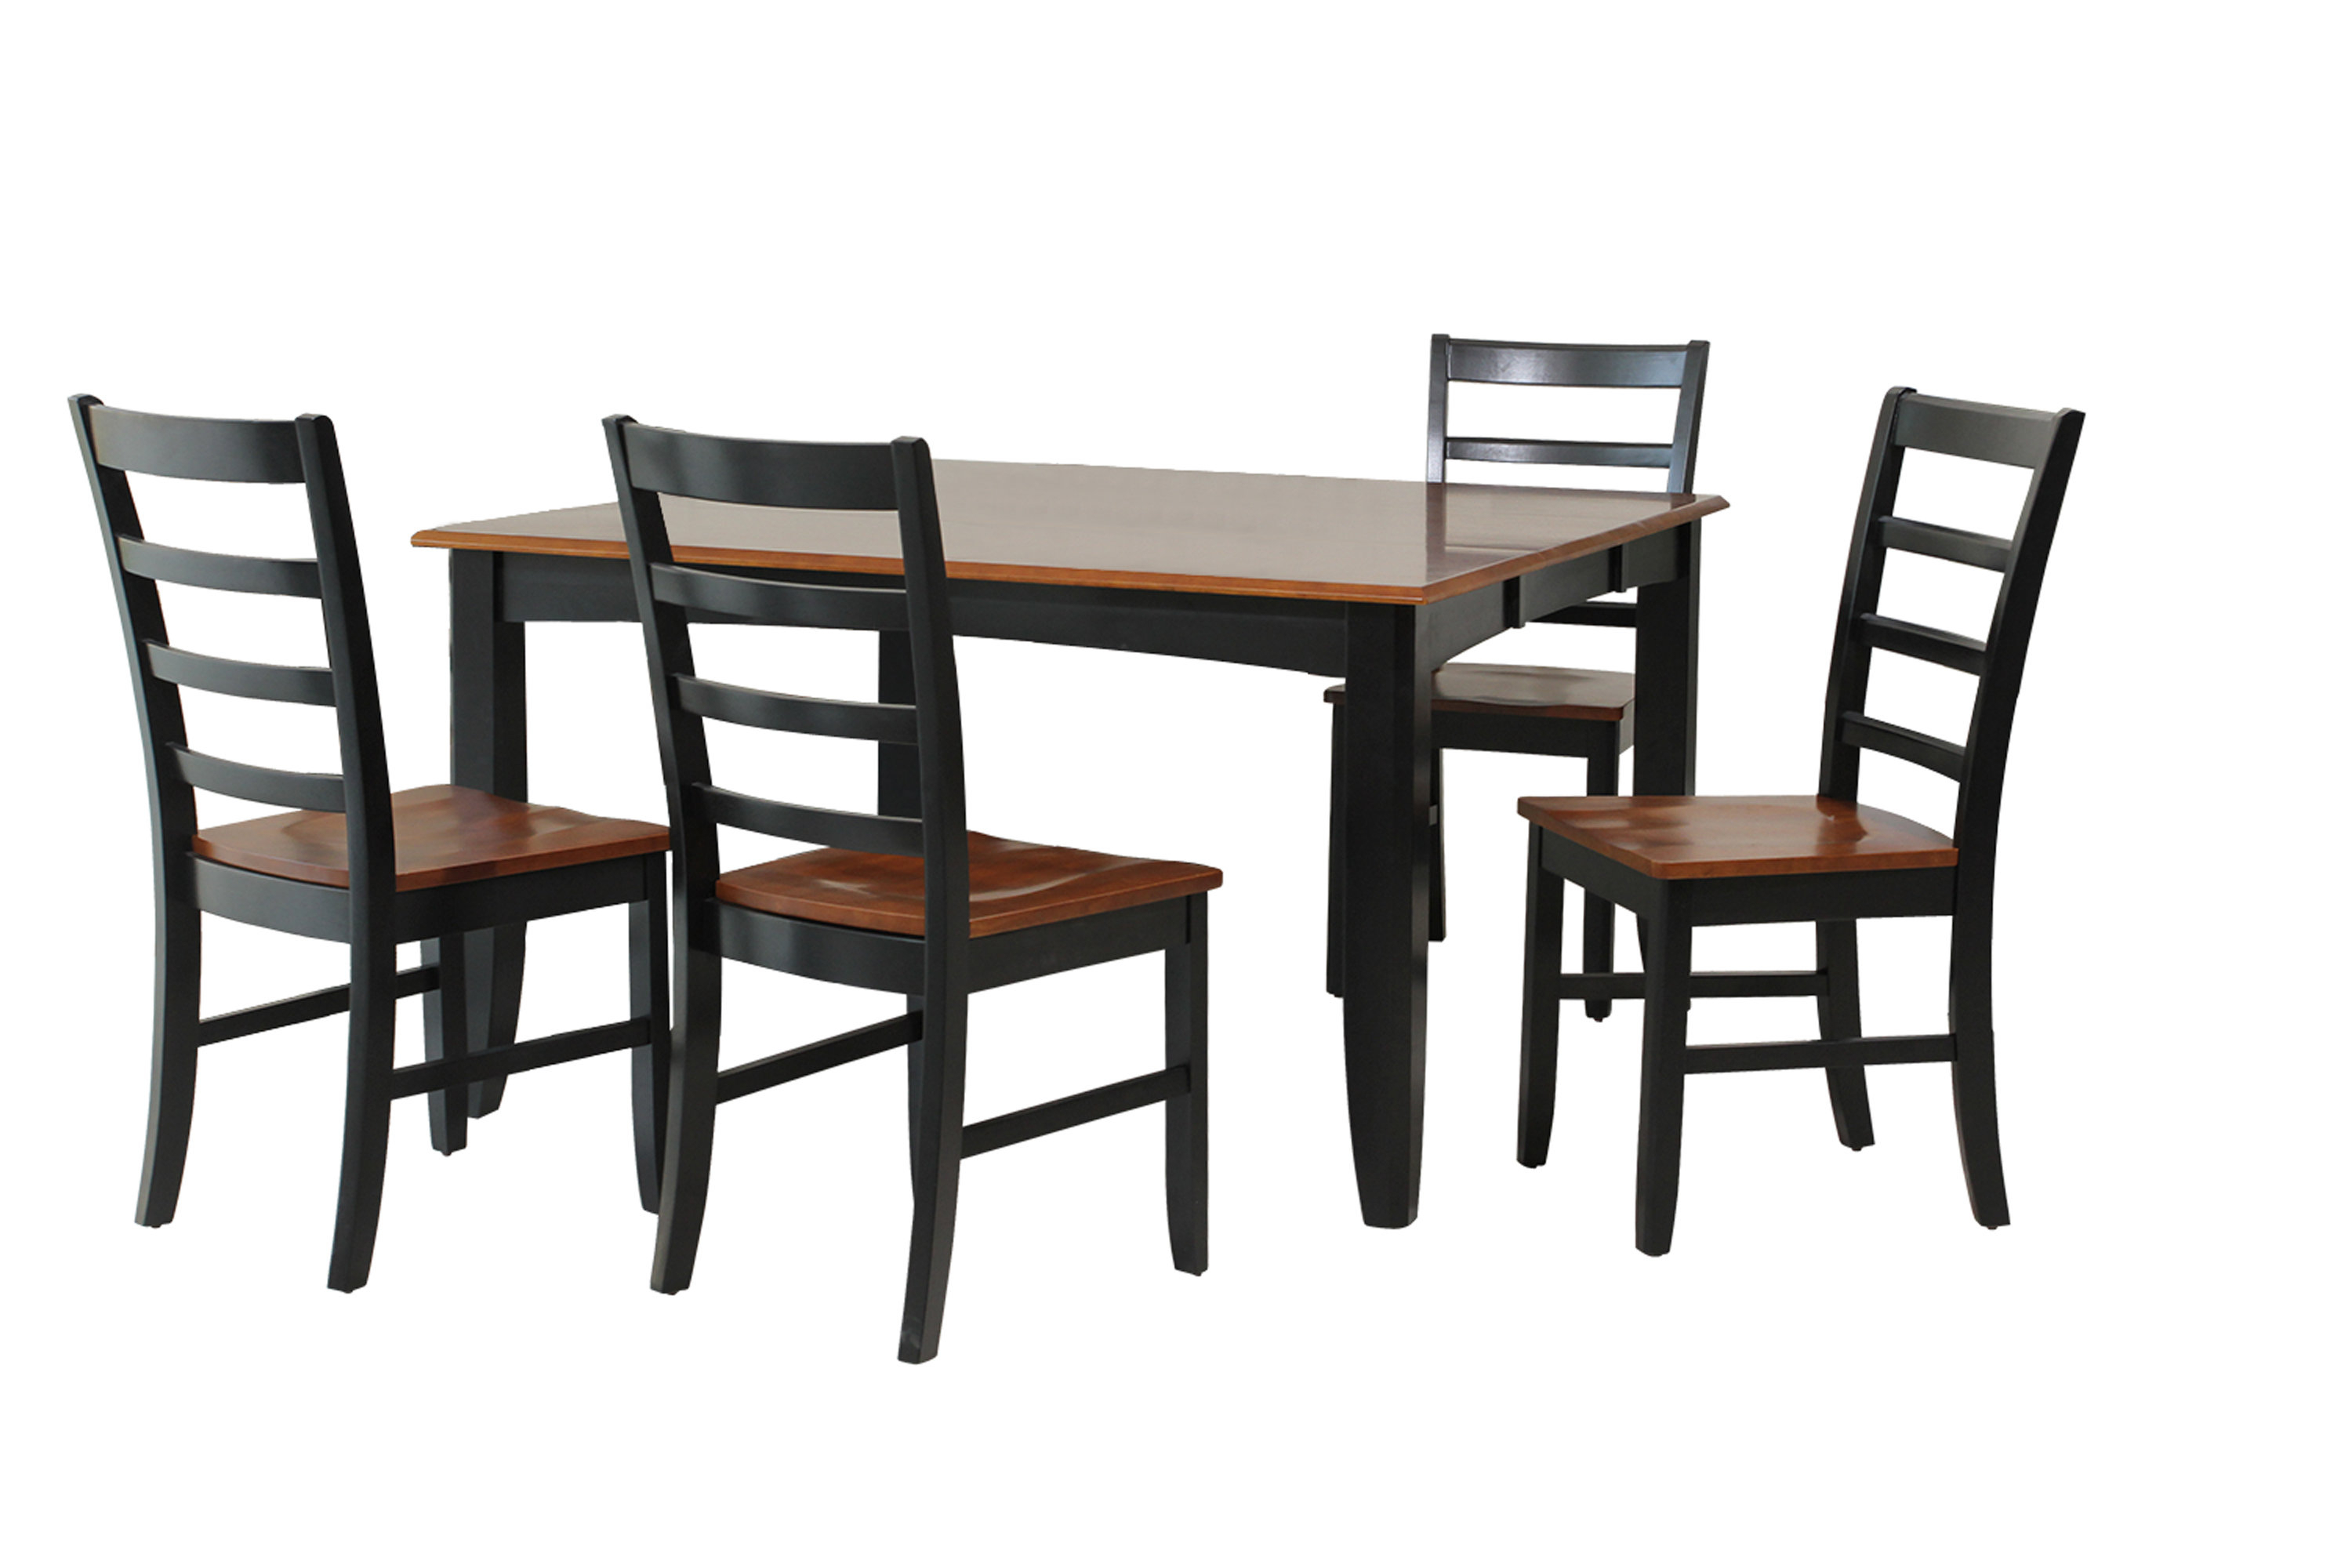 Inspiration about Trendy Hanska Wooden 5 Piece Counter Height Dining Table Sets (Set Of 5) Within Red Barrel Studio Venizelos 5 Piece Solid Wood Dining Set (#7 of 20)